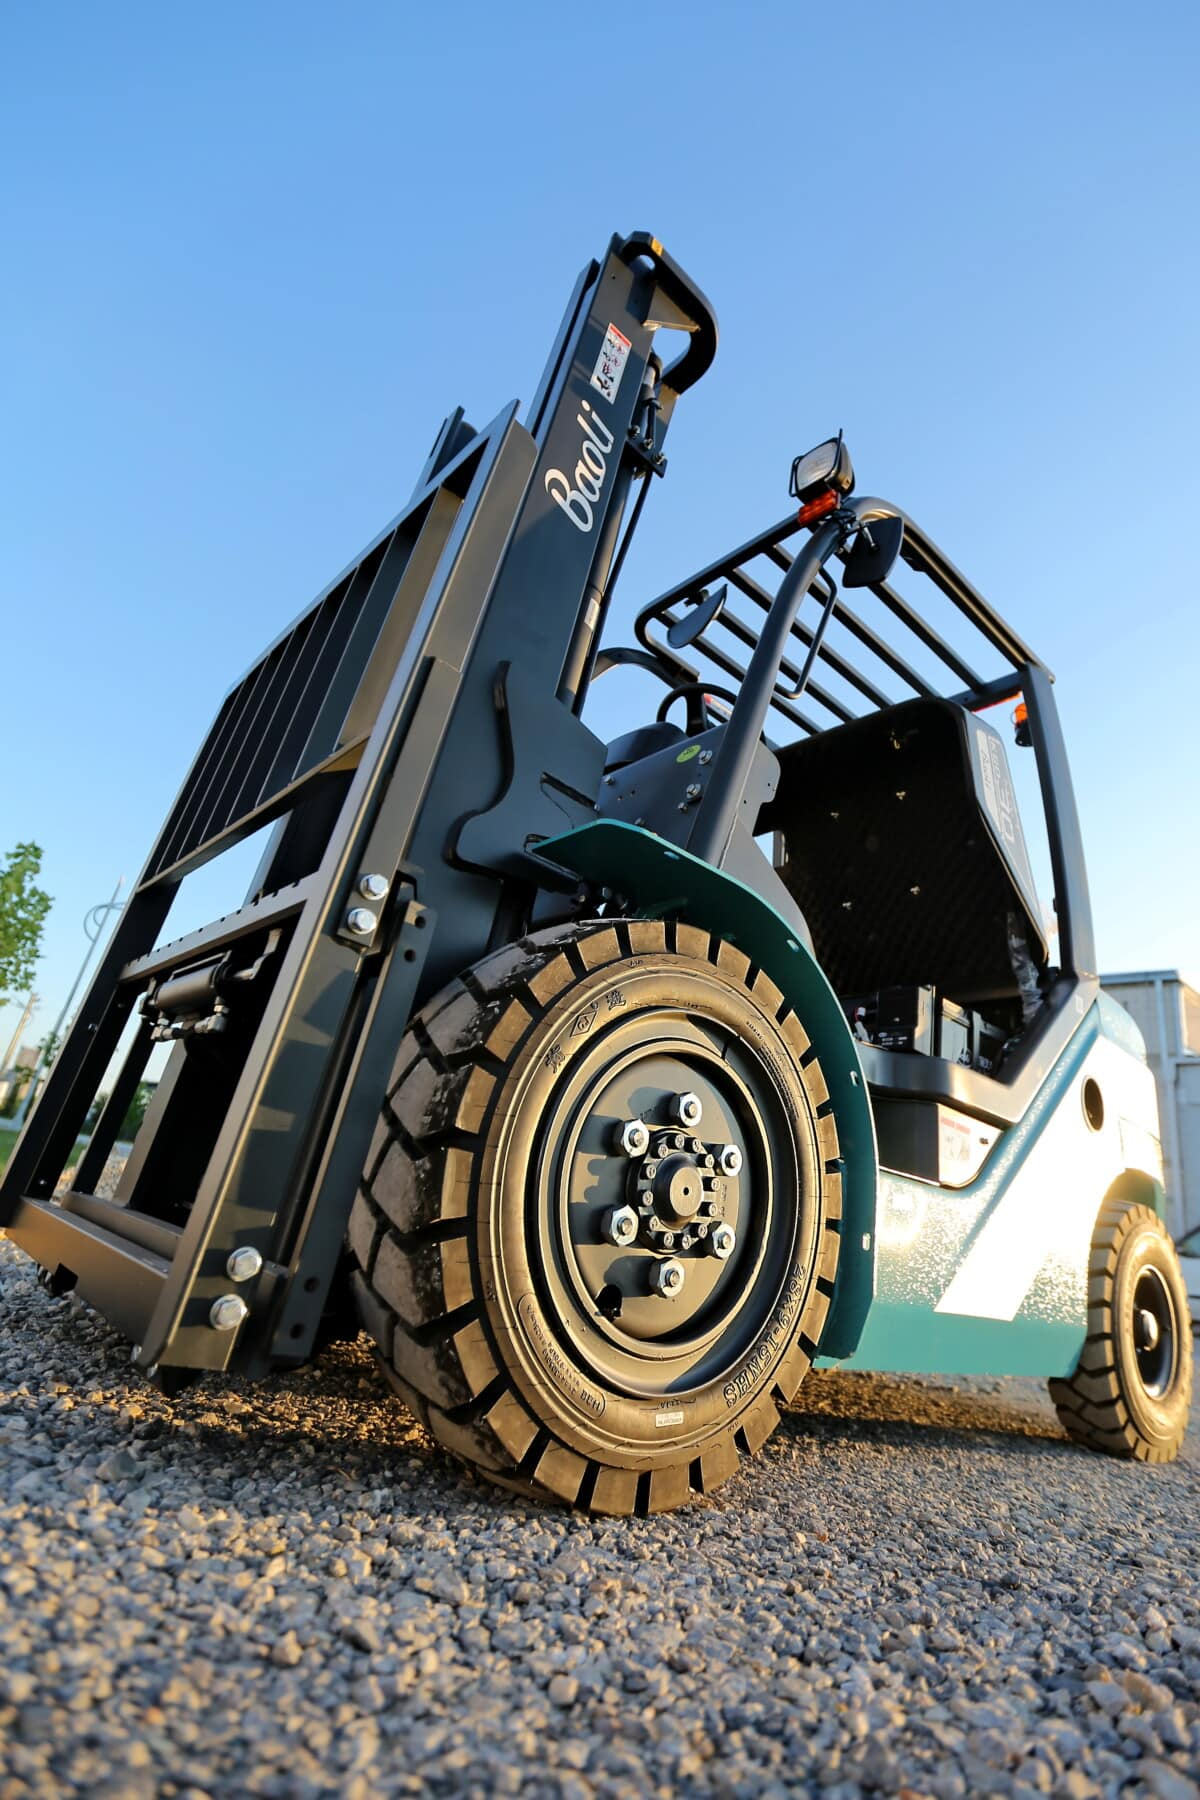 forklift, machine, heavy, industrial, vehicle, factory, tire, machinery, outdoors, diesel